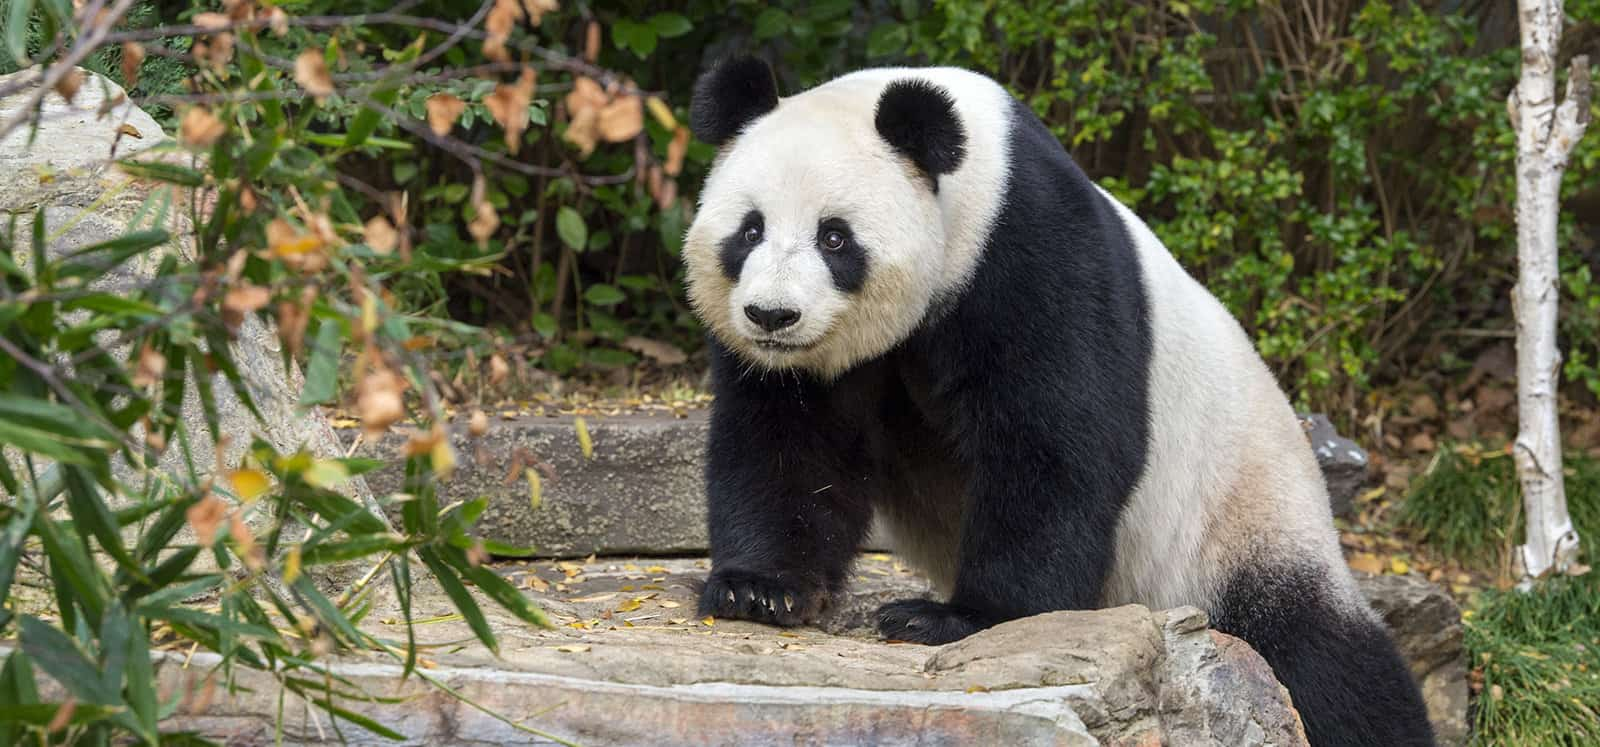 Giant Panda climbing a rock at Adelaide Zoo